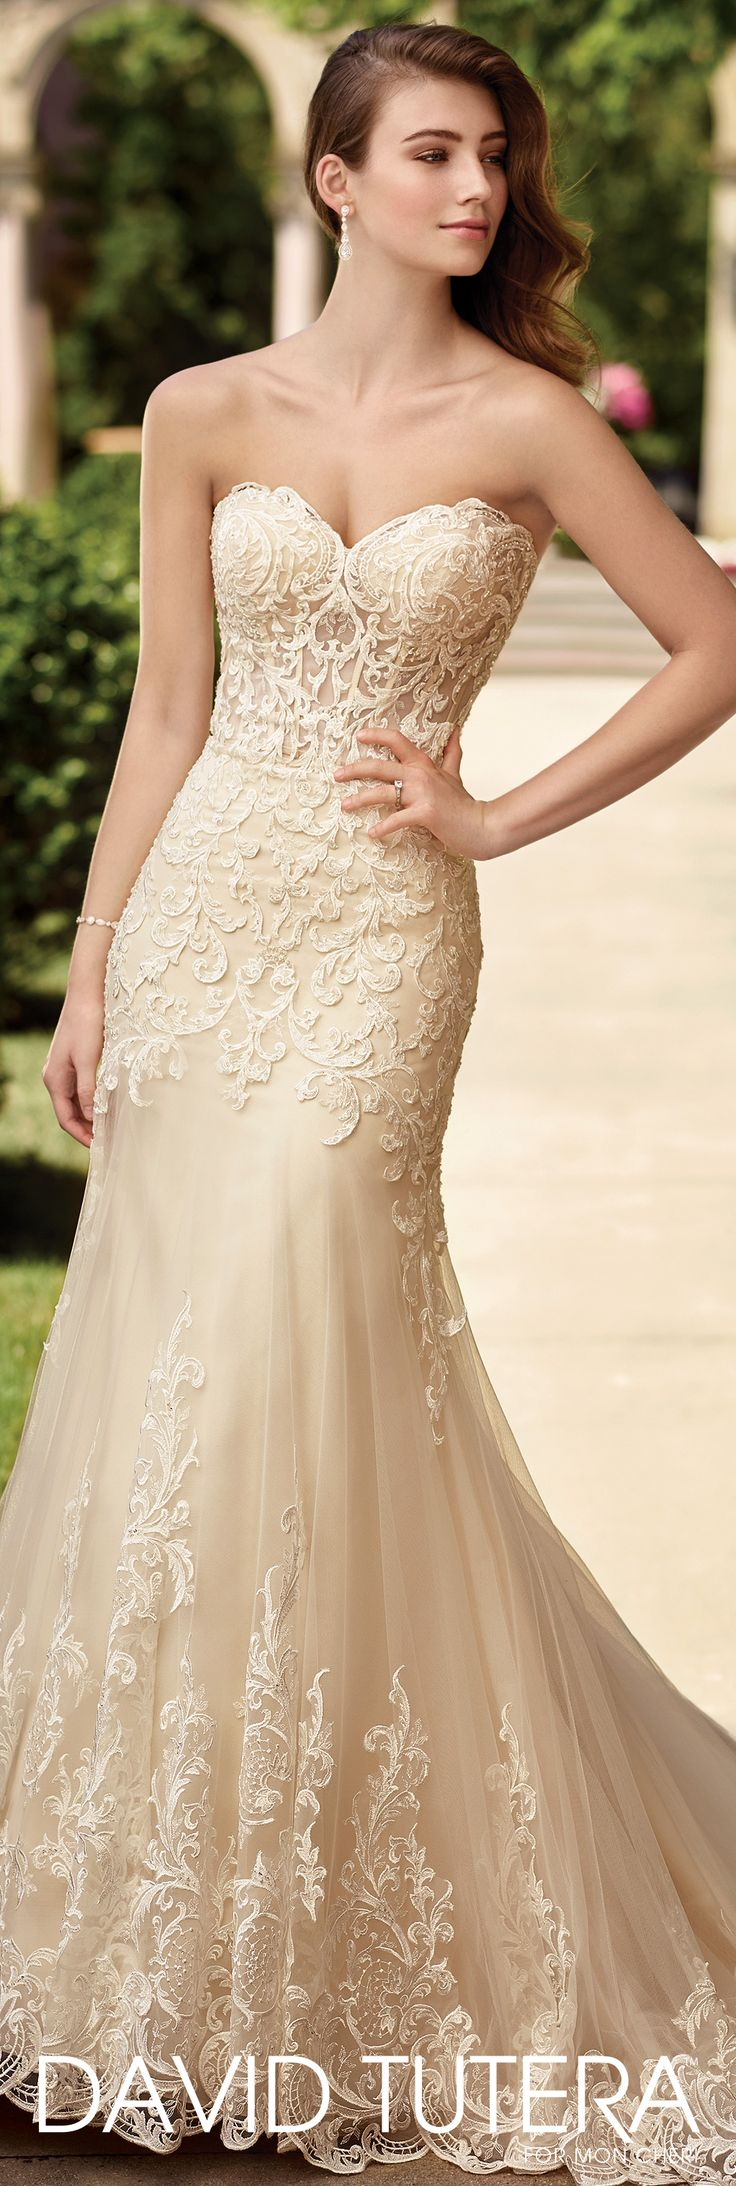 David Tutera for Mon Cheri Spring 2017 Collection - Style No. 117278 Oria - Ivory and Light Gold strapless lace wedding dress